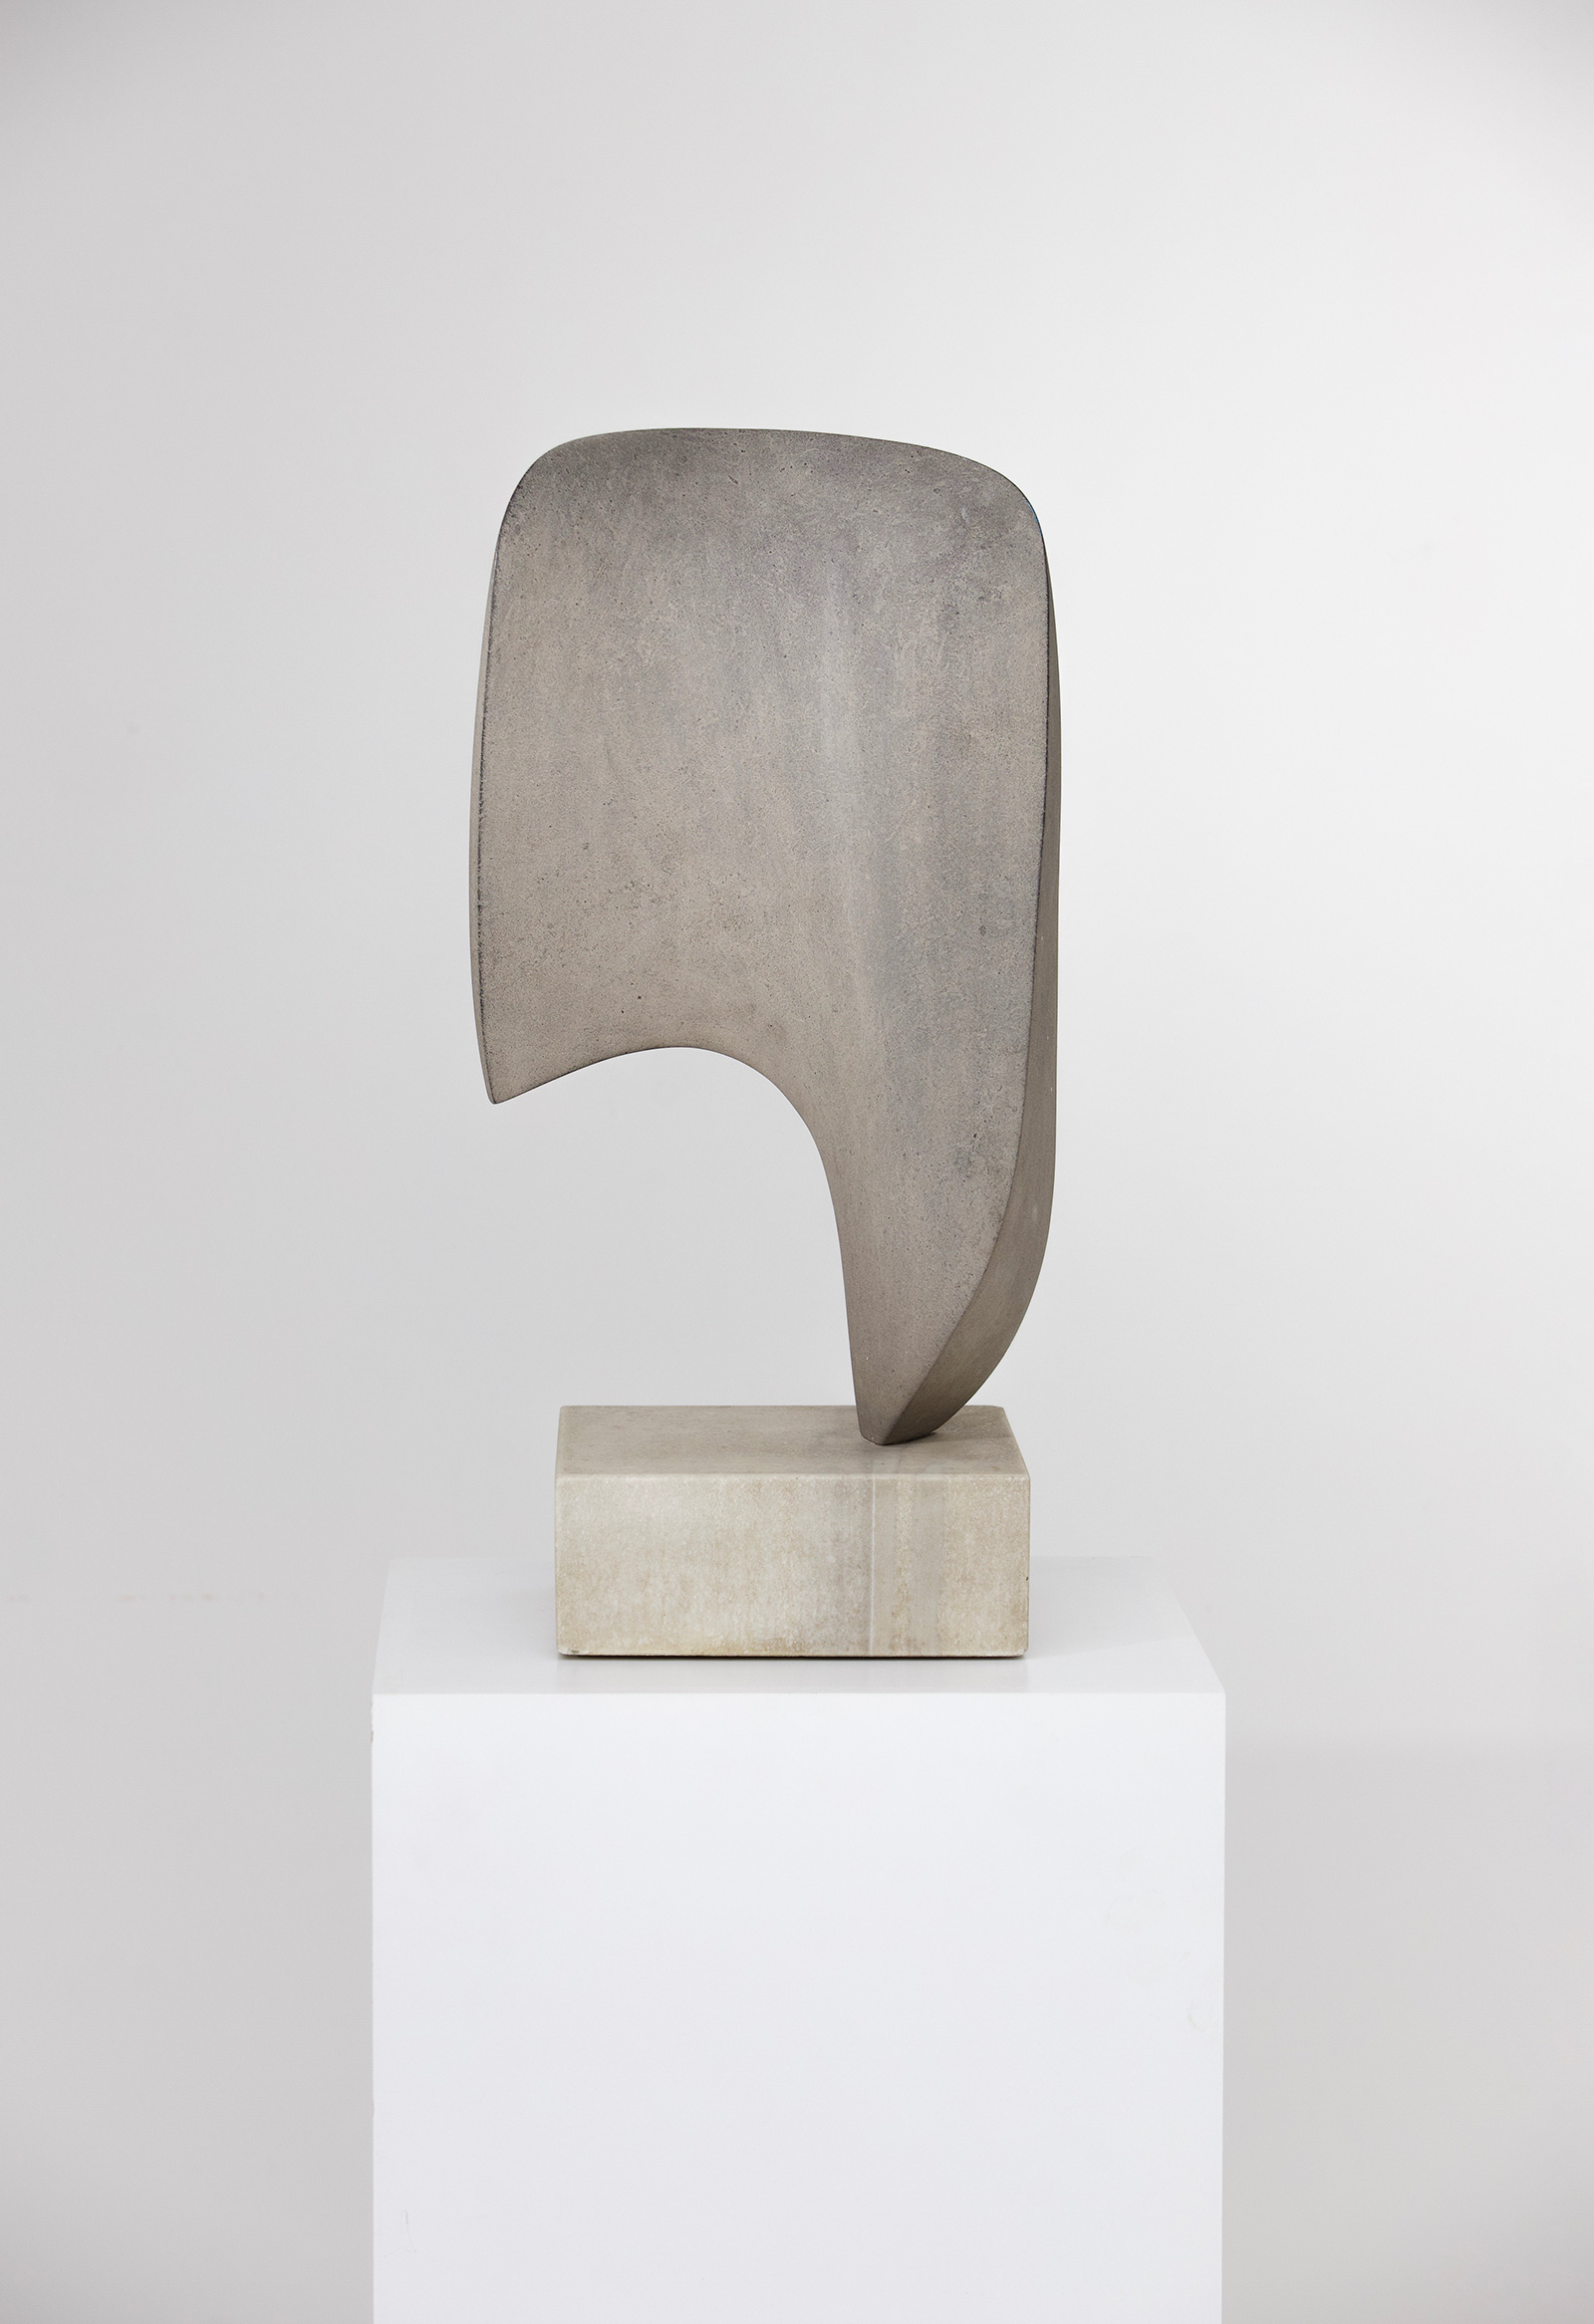 Sculpture from Elisabeth-Marie De Wee image 1